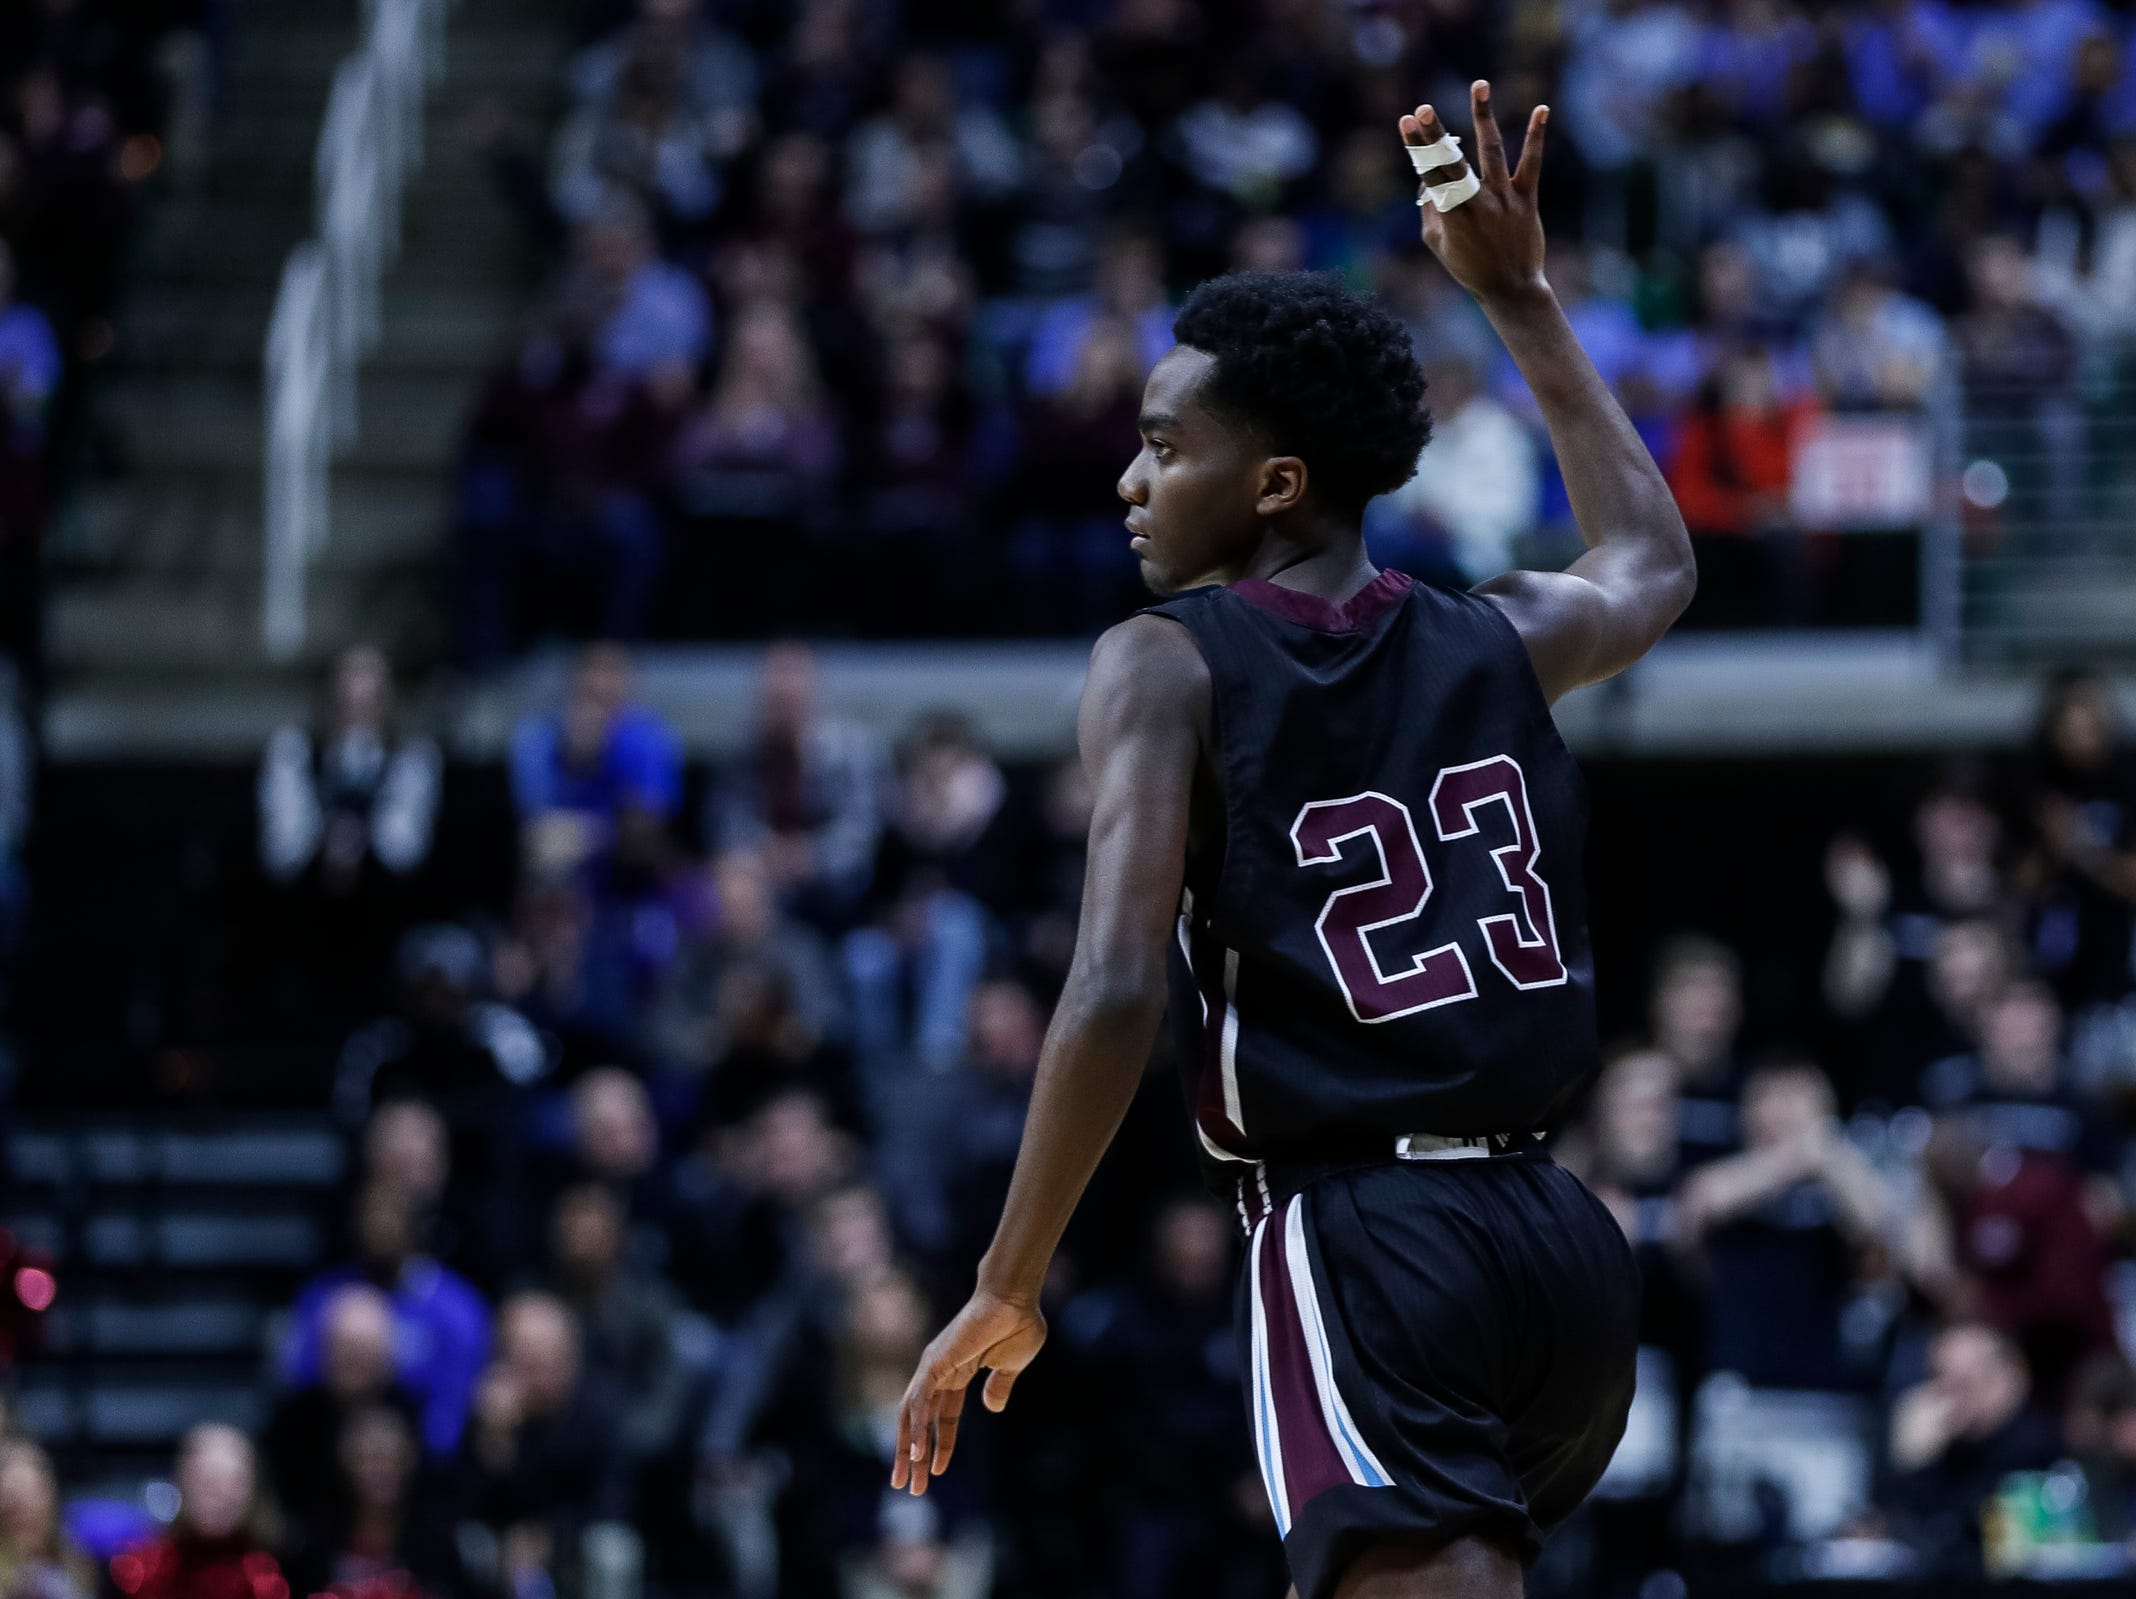 Okemos' Austin Gibson (23) celebrates a 3-pointer against U-D Jesuit during the first half of MHSAA Division 1 semifinal at the Breslin Center in East Lansing, Friday, March 15, 2019.